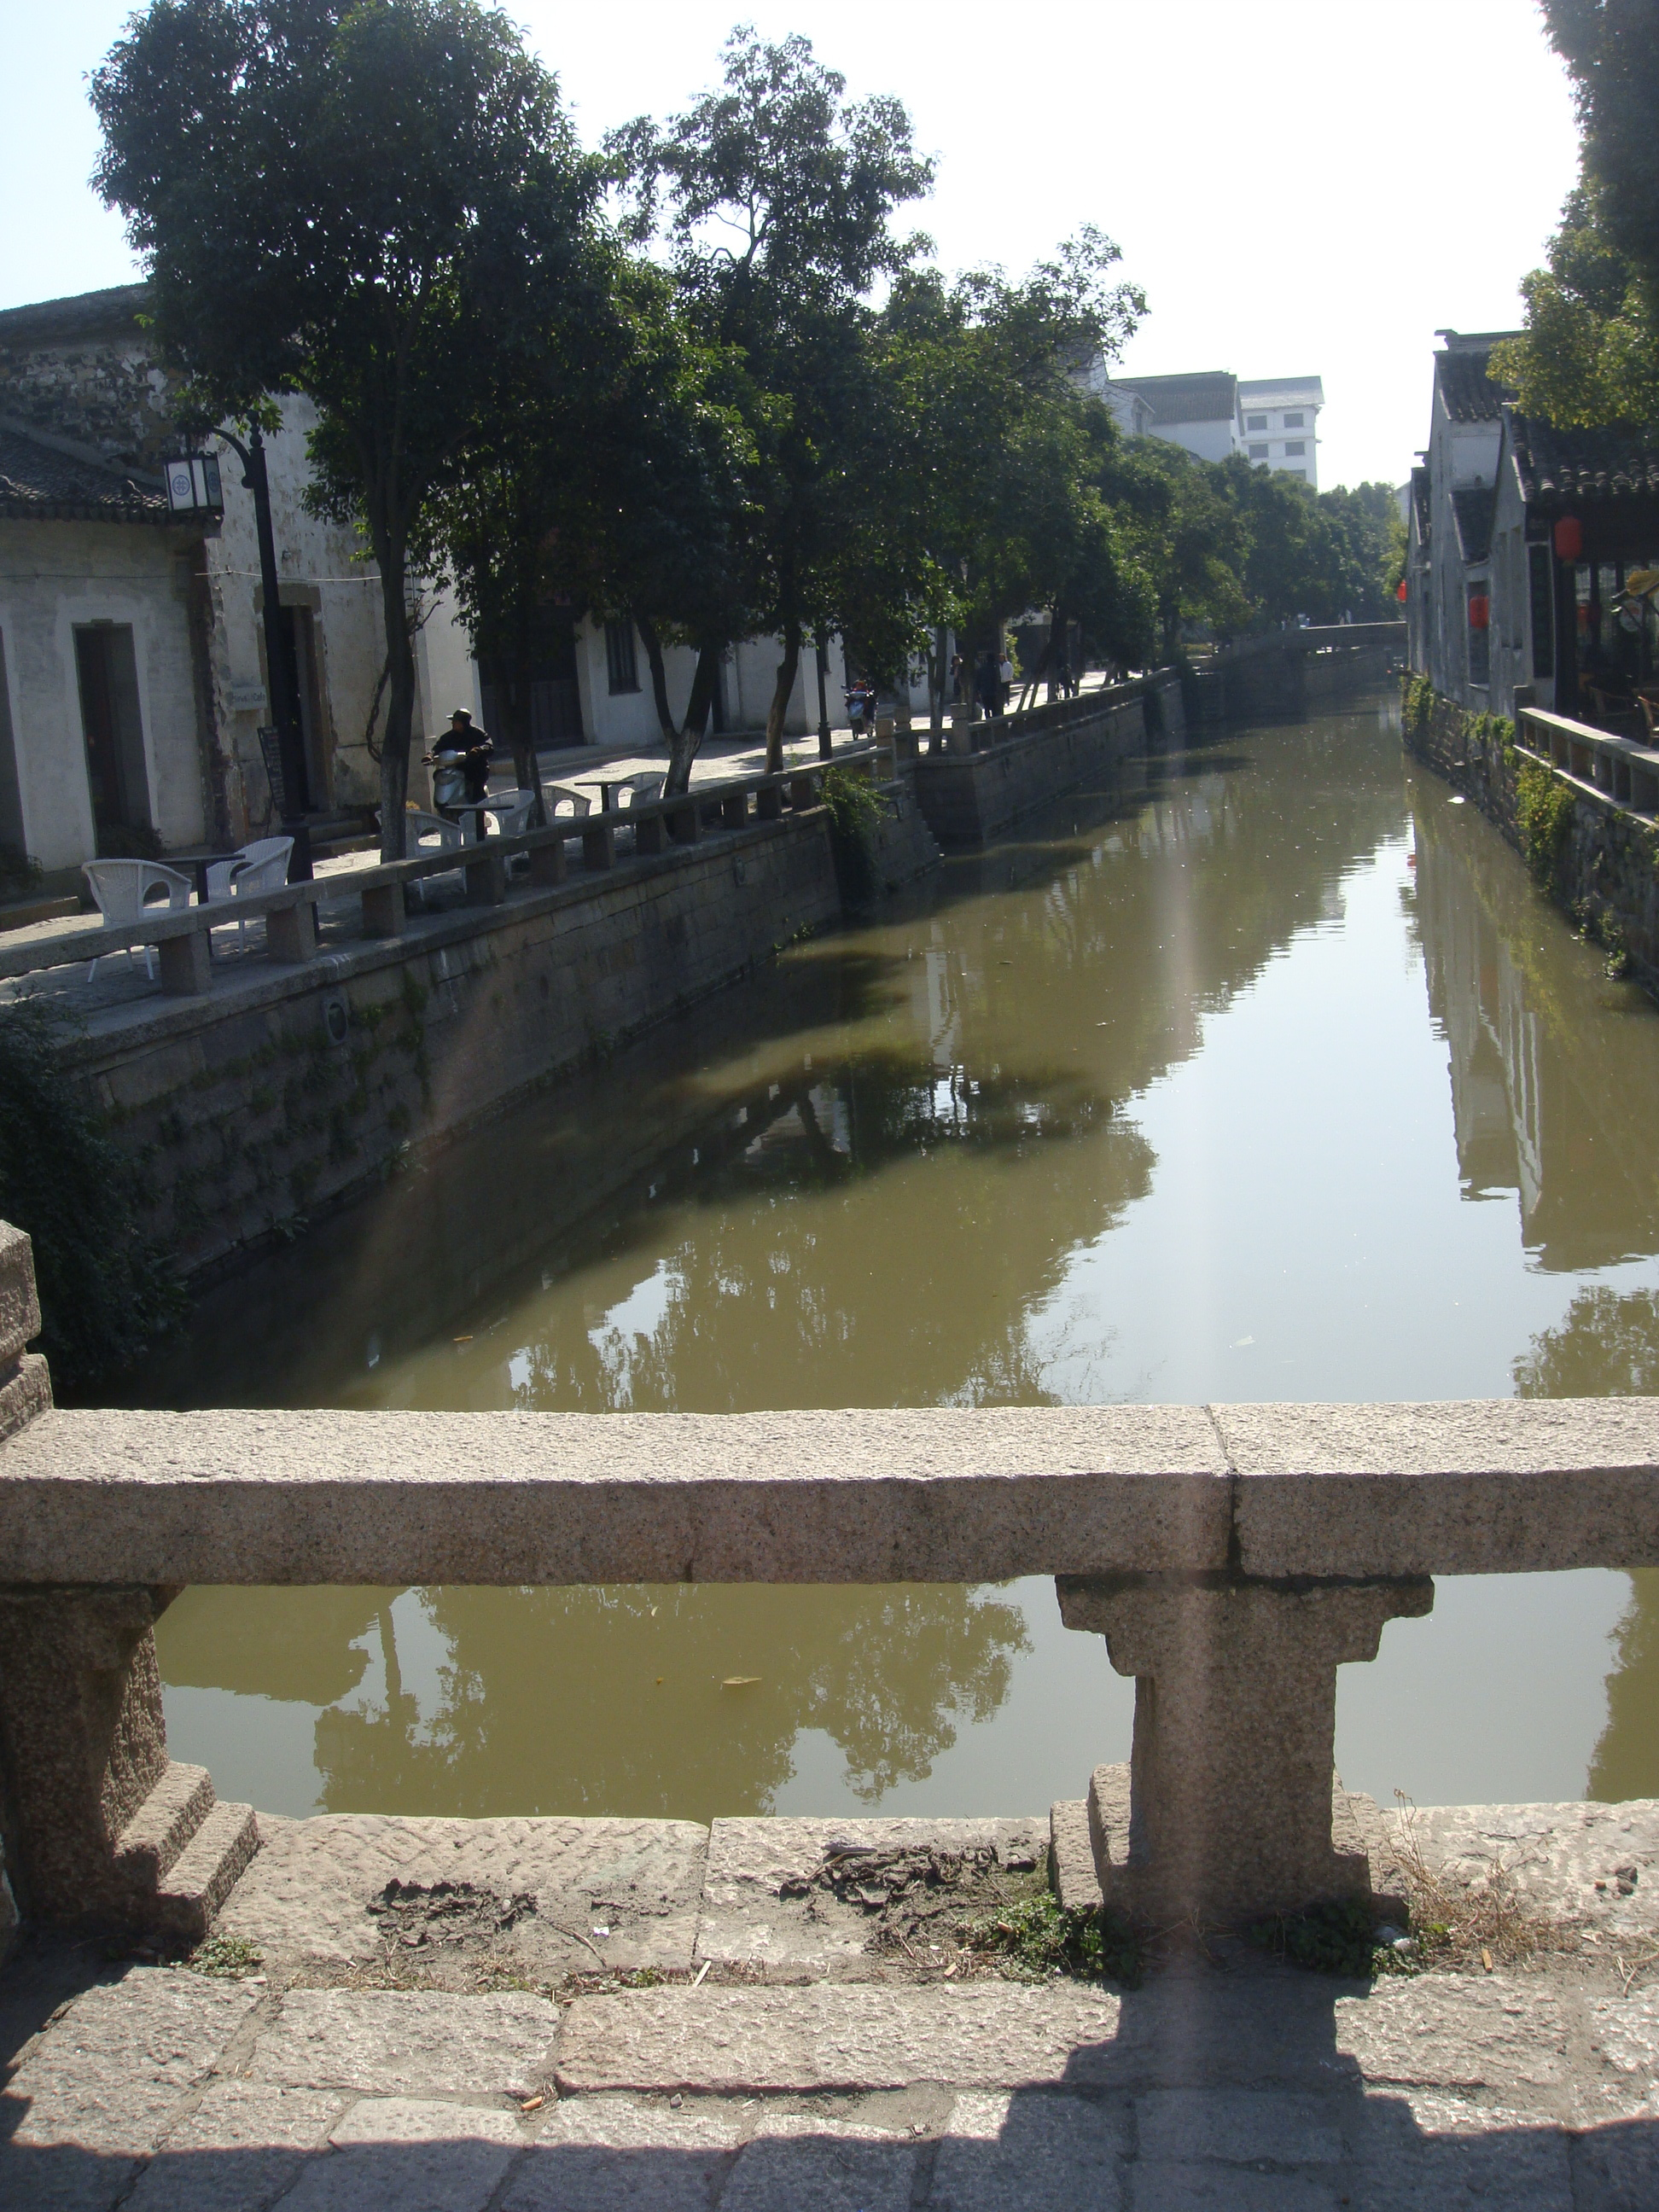 Venice style canal in front of the hostel